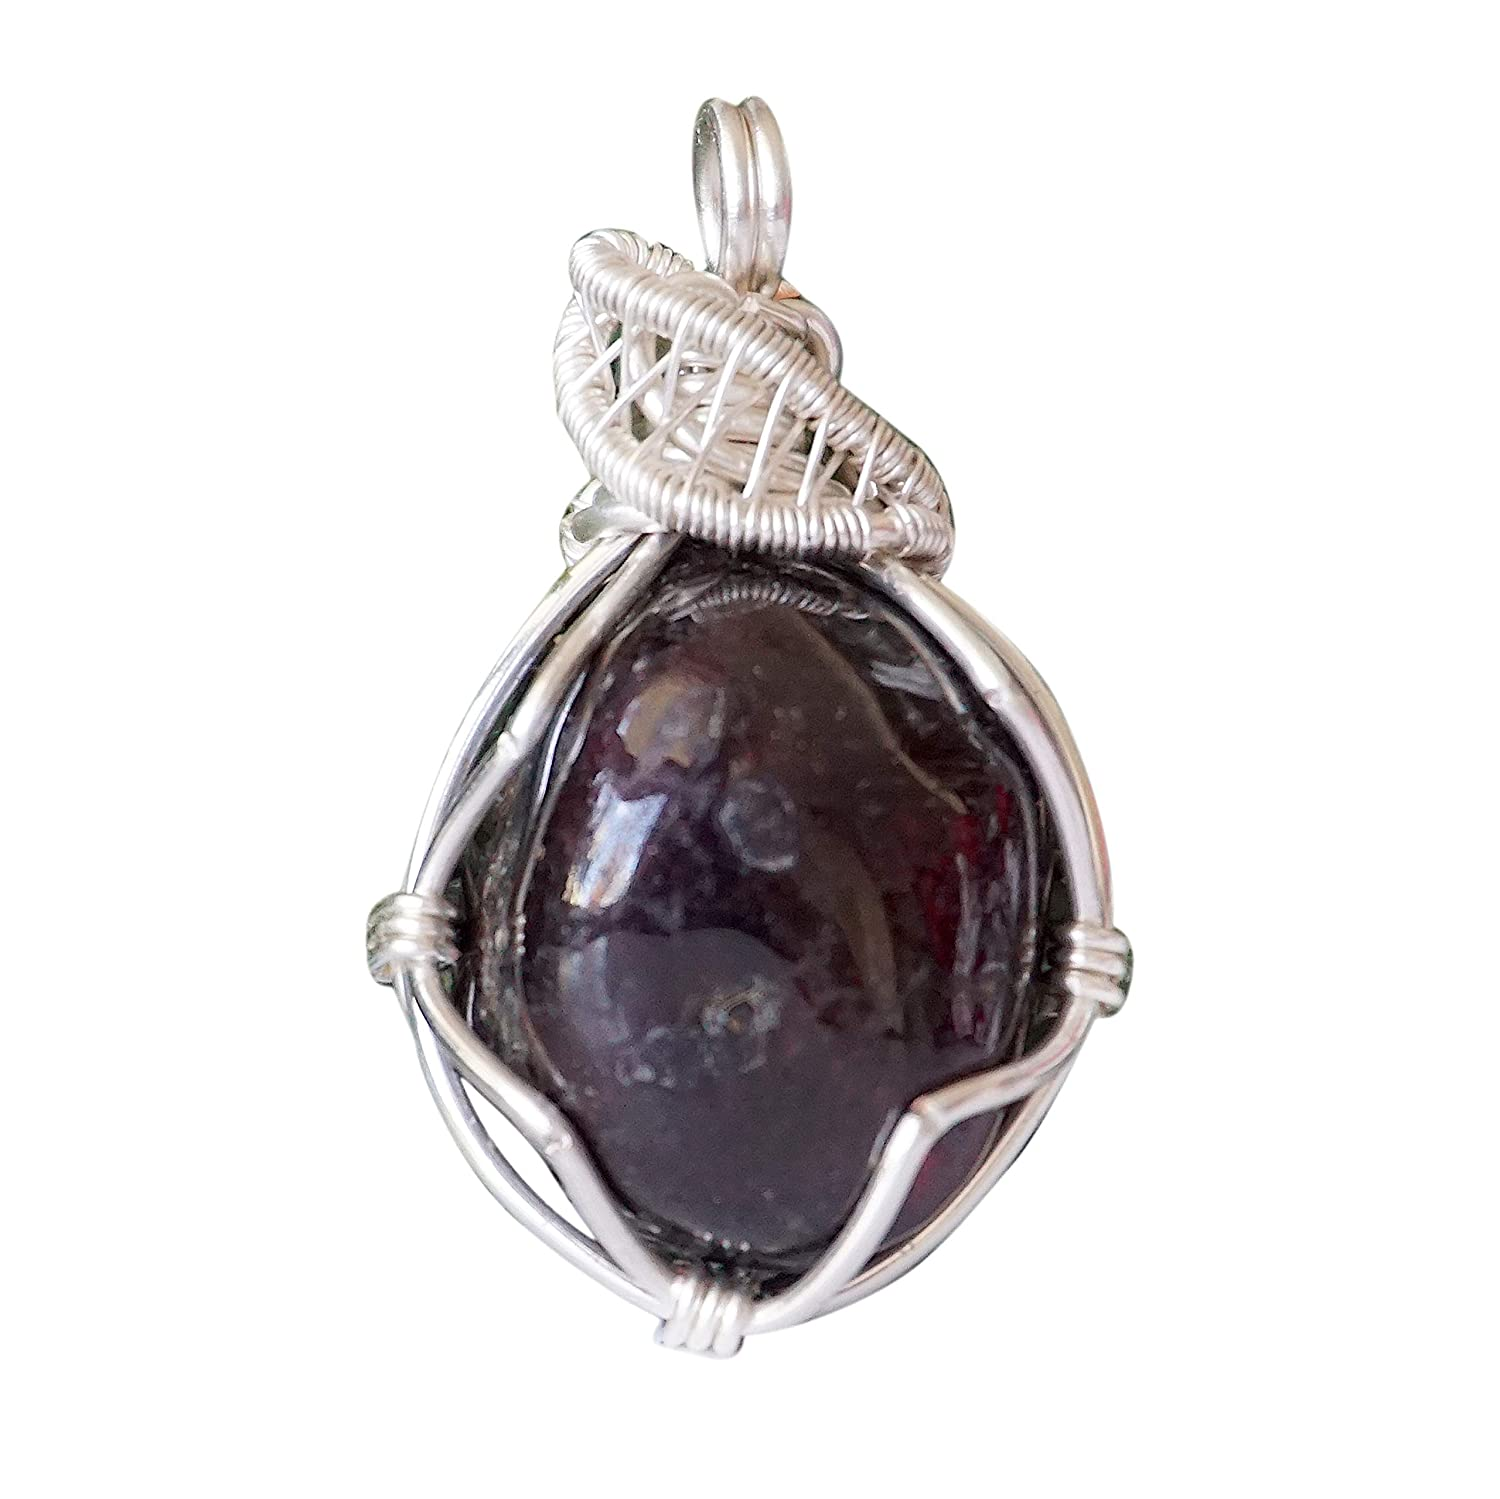 Raw Dark Garnet Necklace   Wire Wrapped Garnet Pendant Necklace   21 Inch  Sterling Silver Plated Chain   January Birthstone